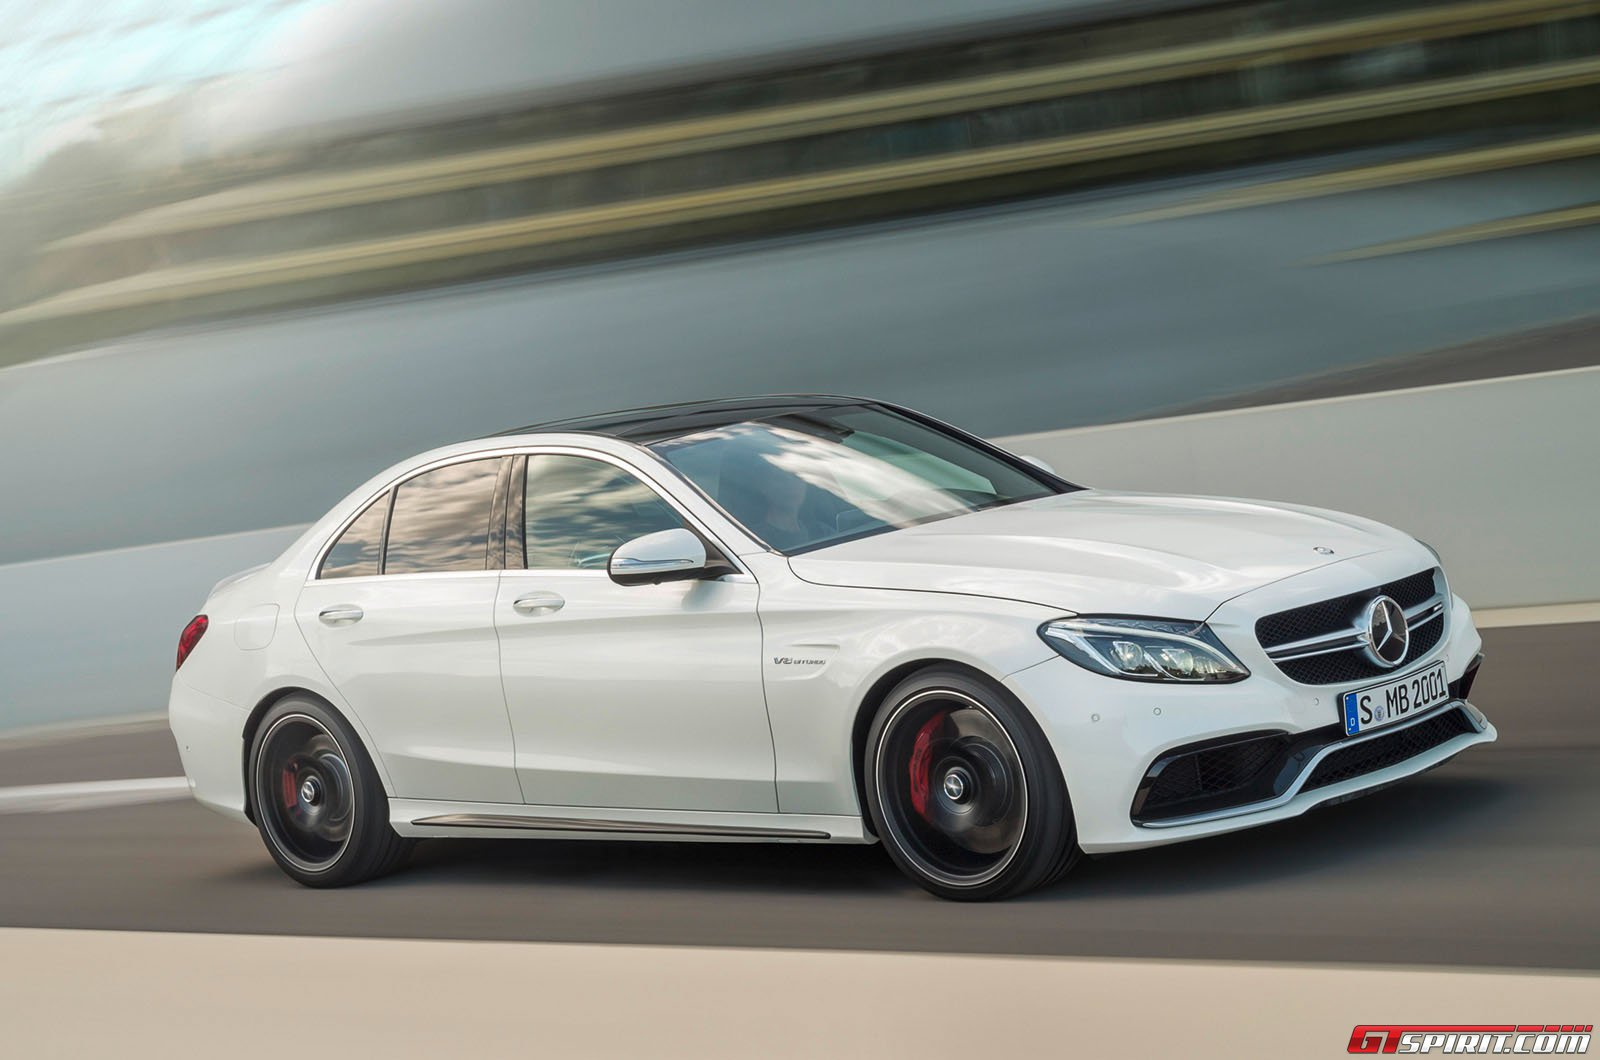 mercedes-benz c-class coupe order books could open september 2015